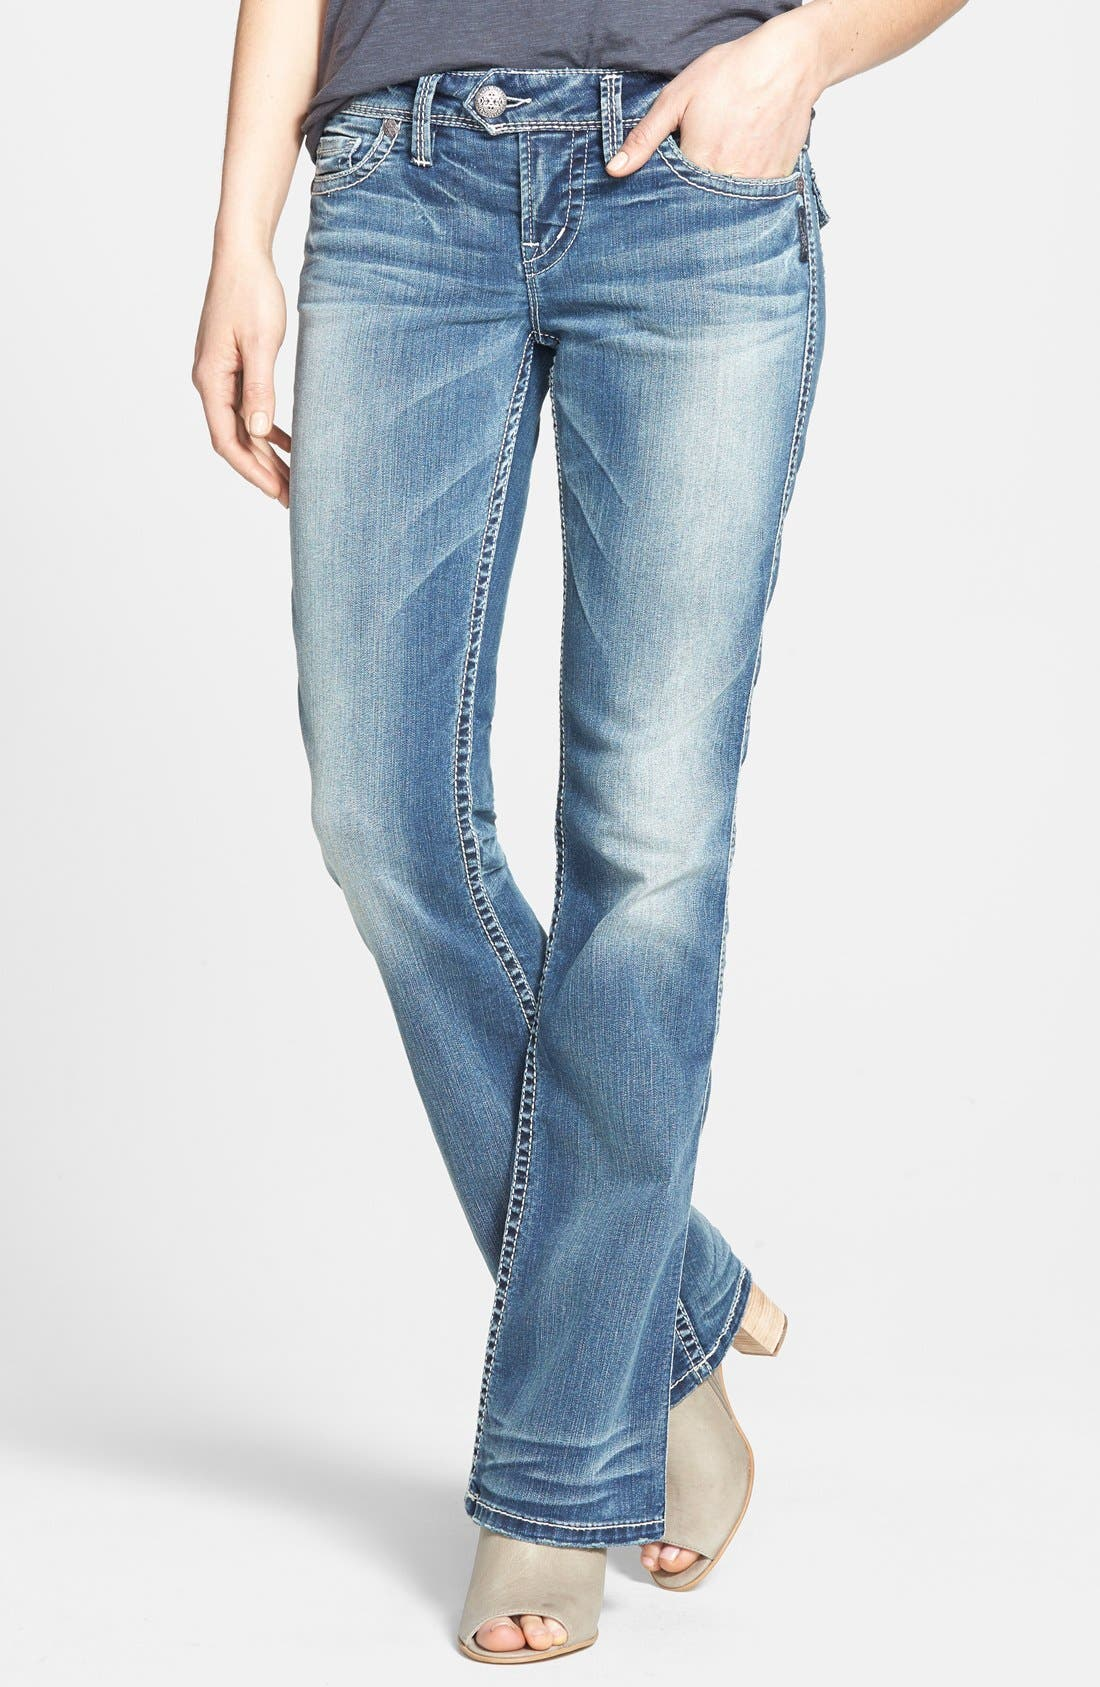 Alternate Image 1 Selected - Silver Jeans Co. 'Tuesday'  Flap Pocket Bootcut Jeans (Indigo)